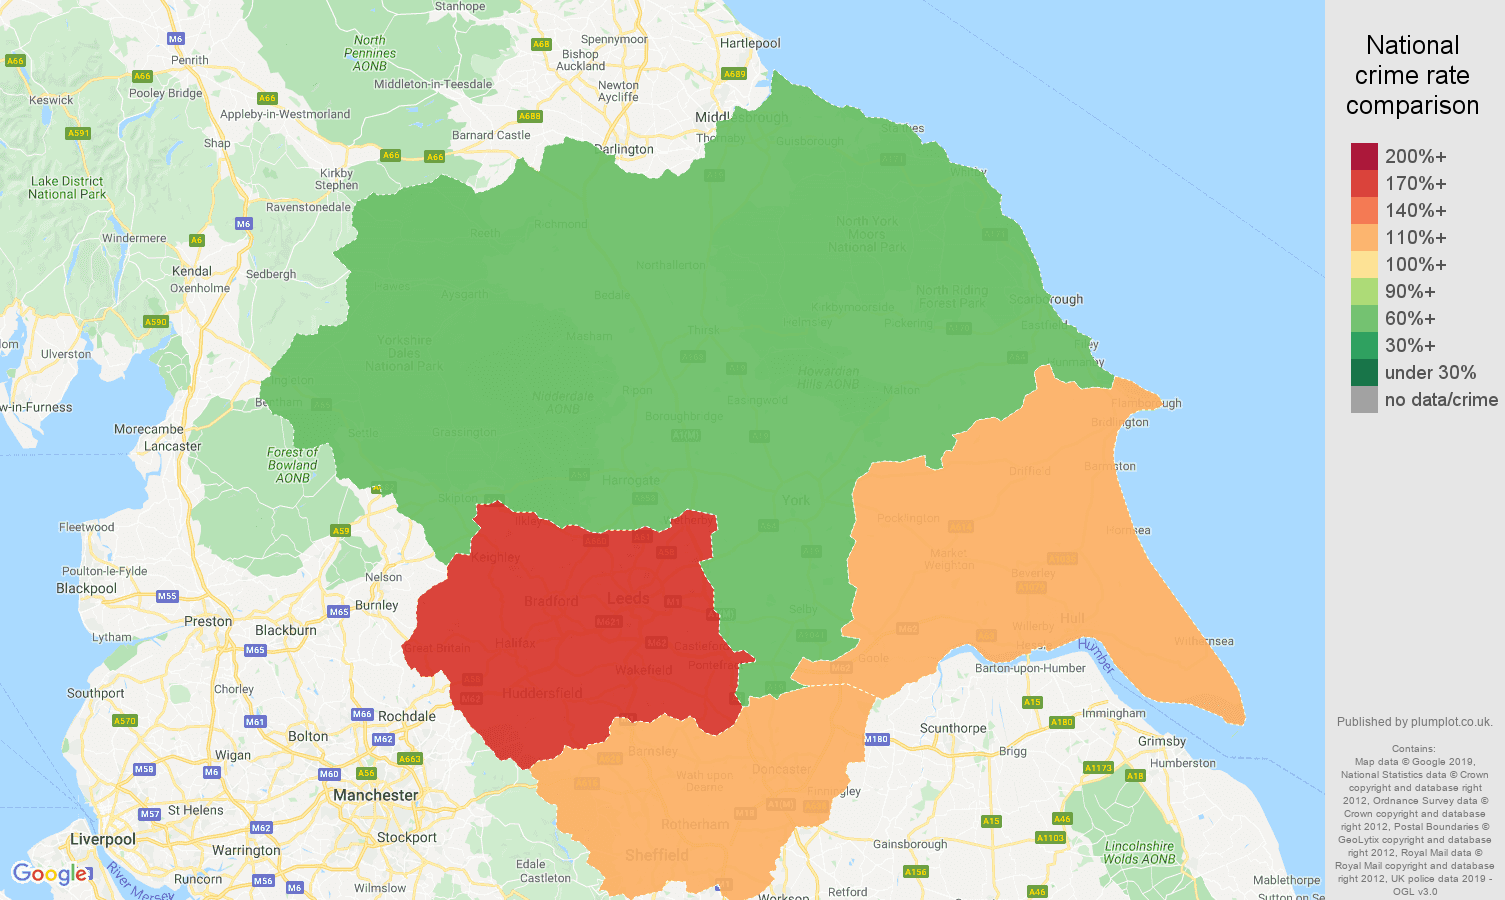 Yorkshire public order crime rate comparison map